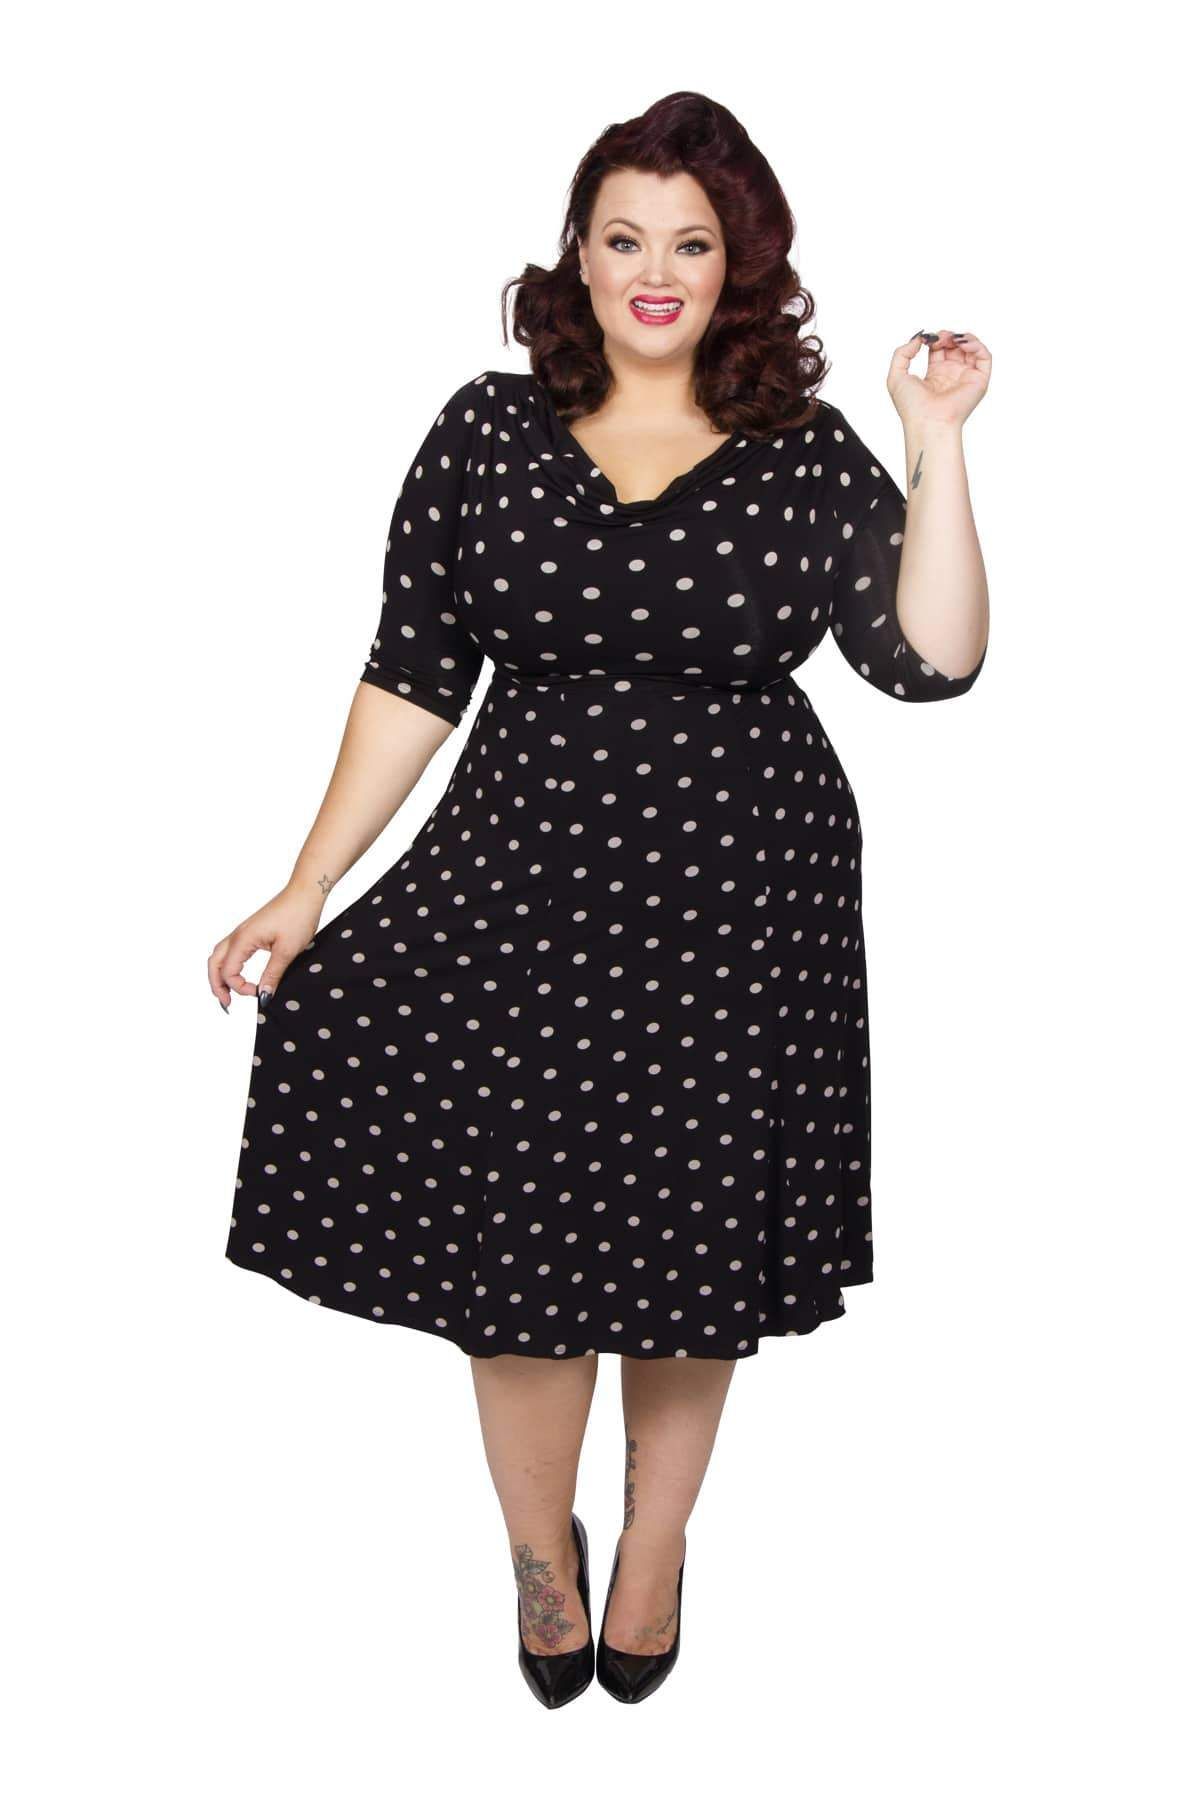 Swing Dance Clothing You Can Dance In Lollidot Cowl Neck 40s Dress - BlackWhite  12 £60.00 AT vintagedancer.com